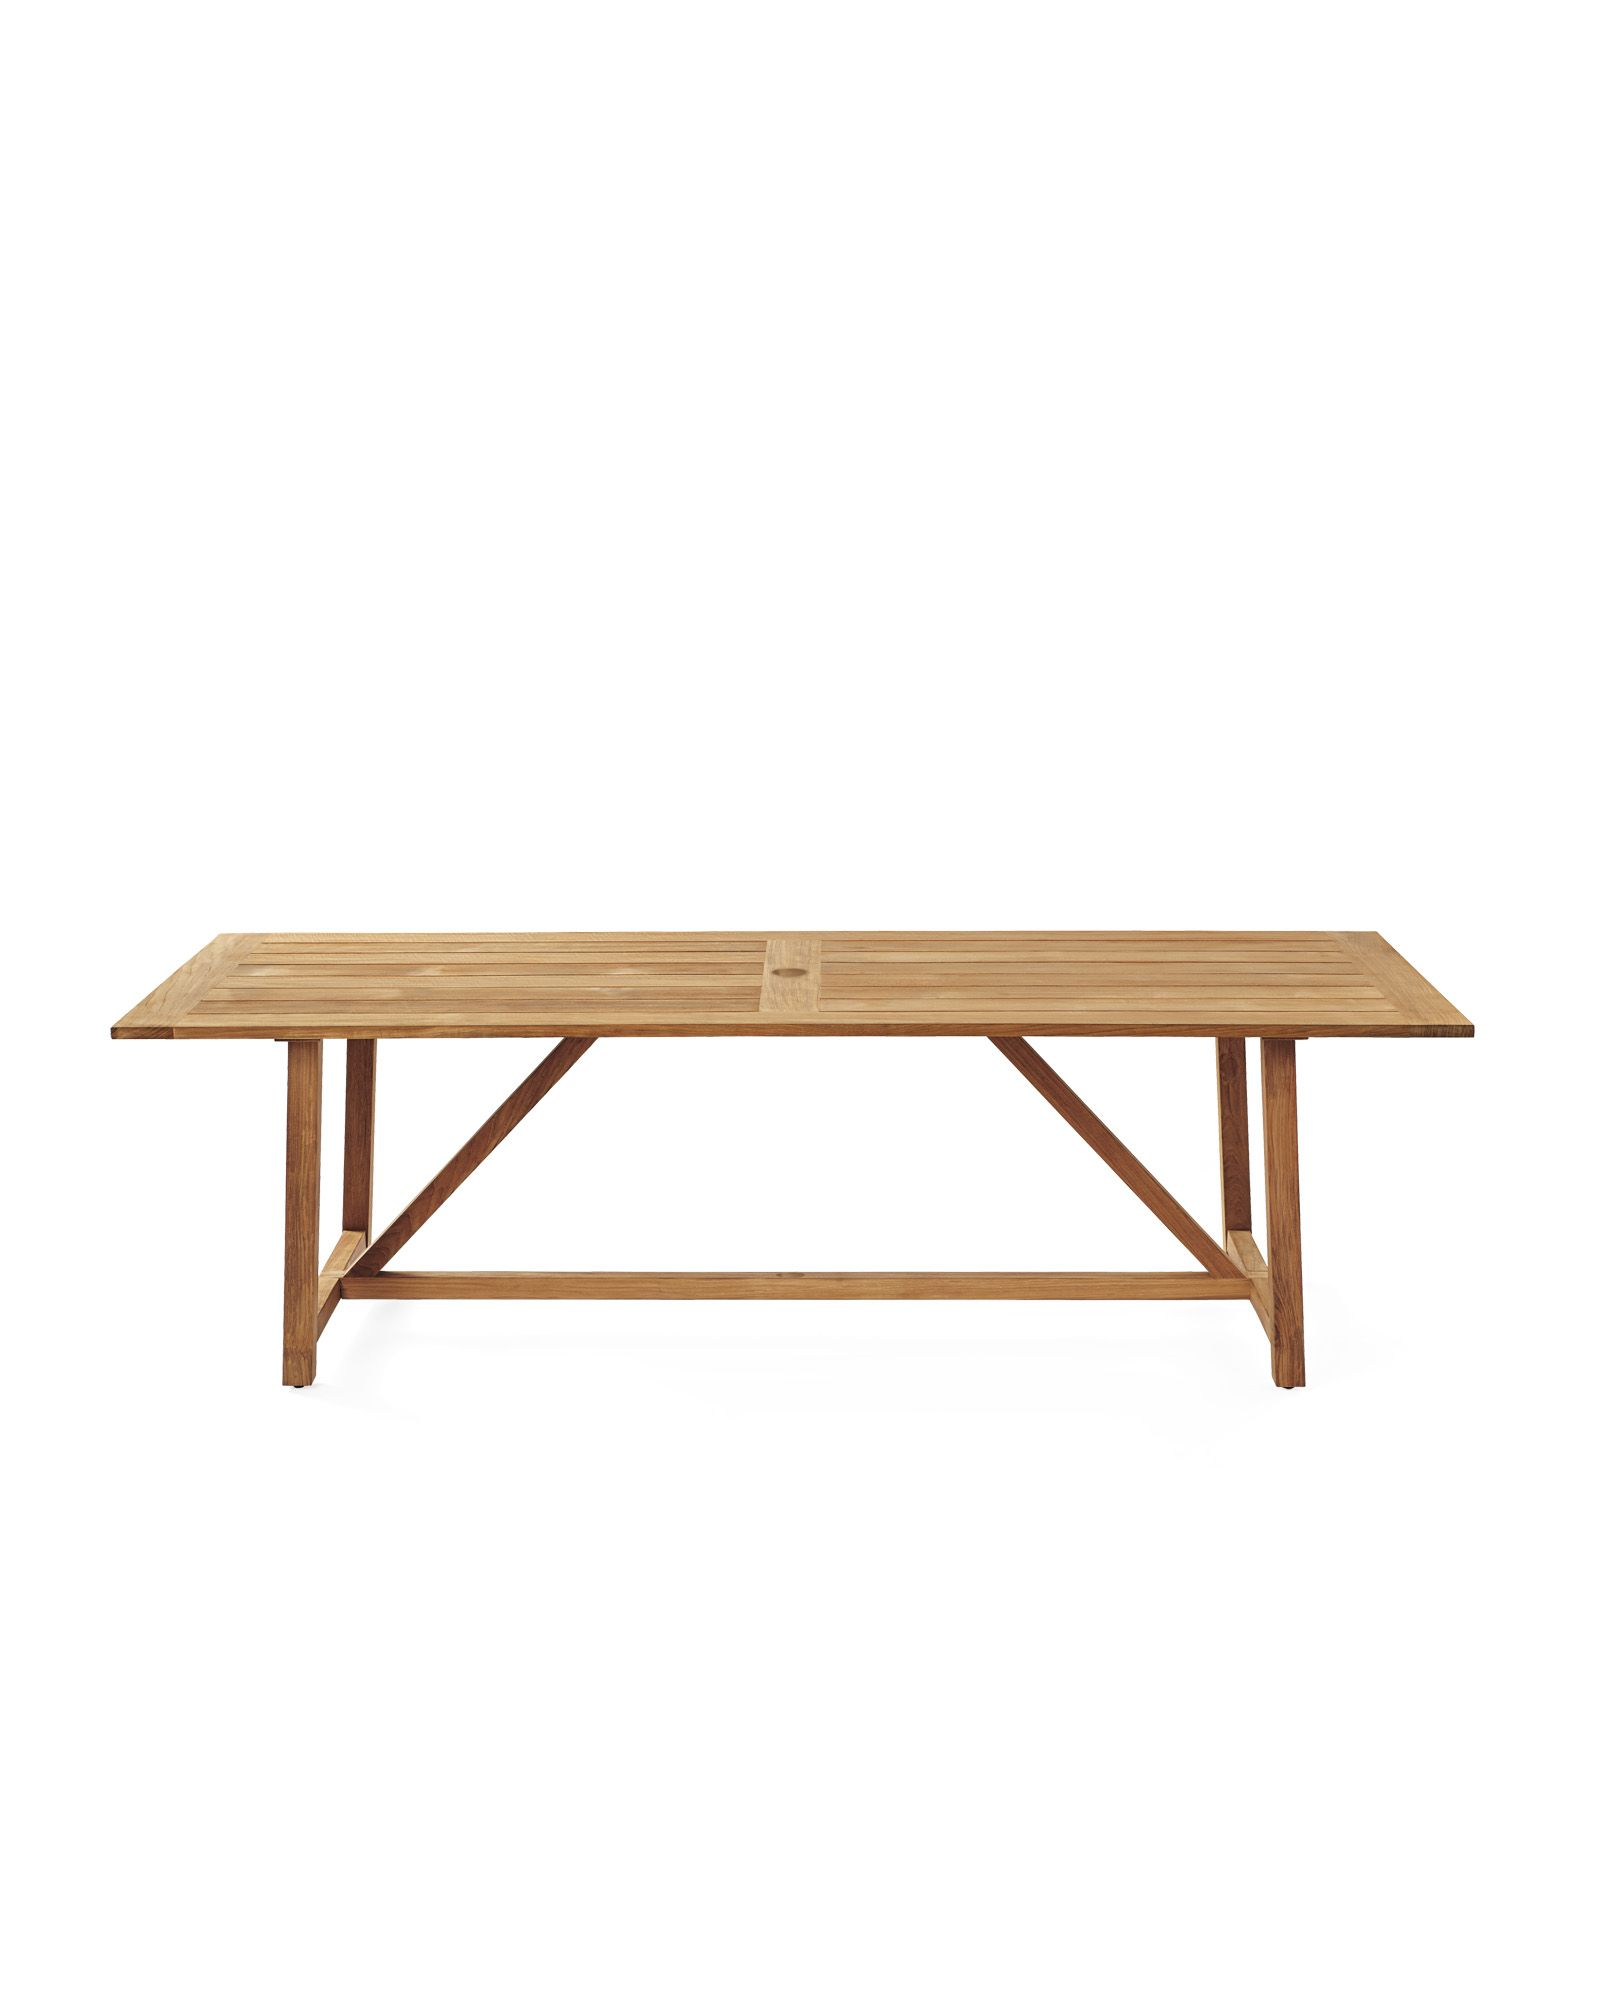 Crosby teak outdoor dining tablecrosby teak outdoor dining table